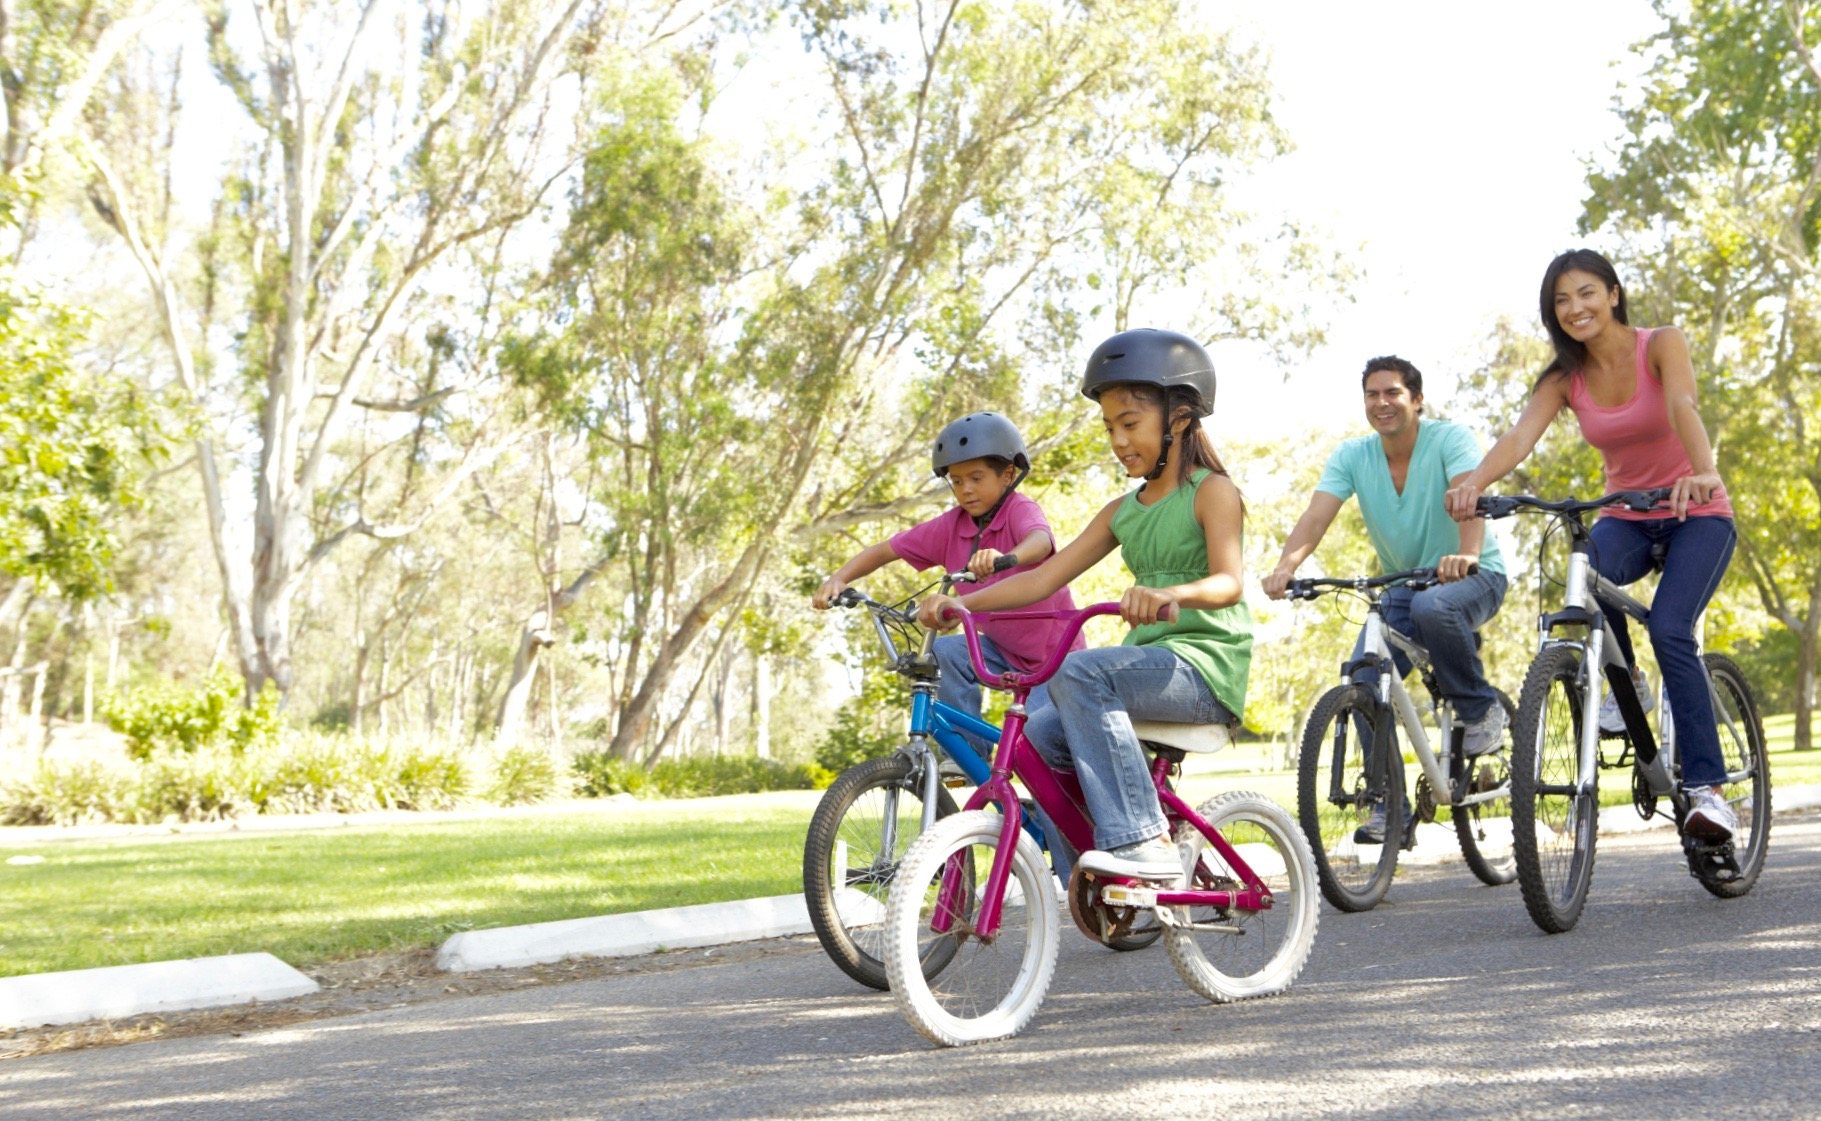 Outdoor Learning Experiences While Riding a Bike